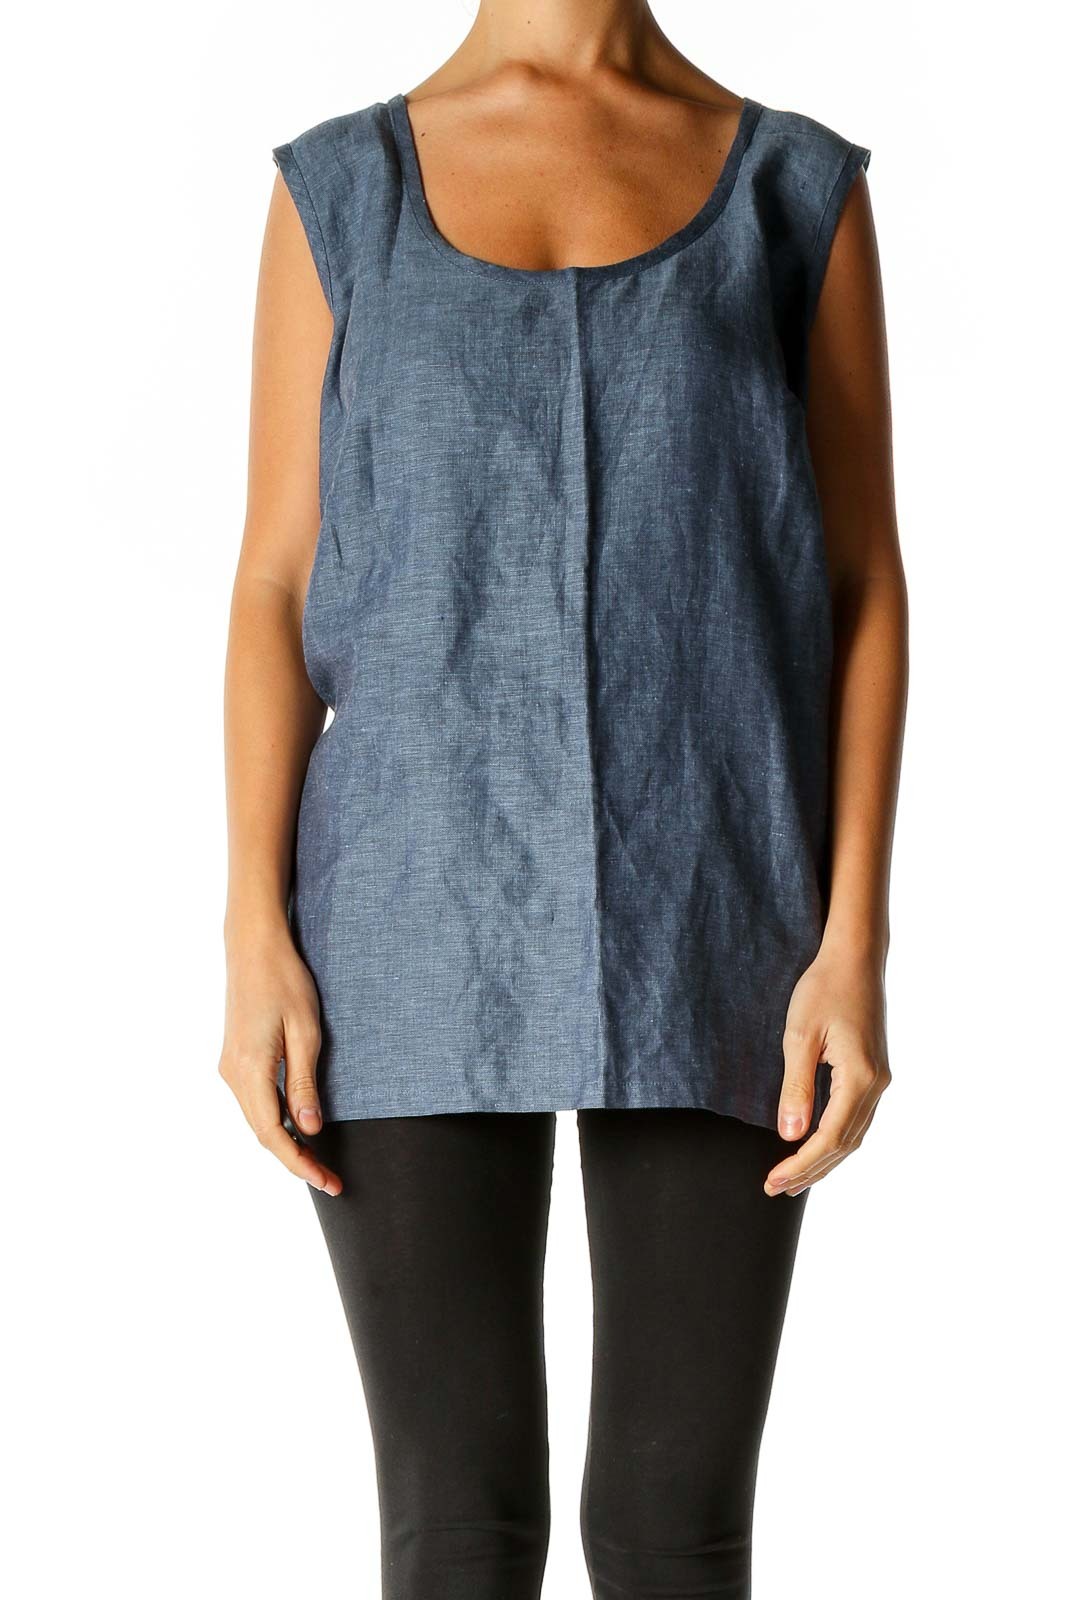 Gray Solid Casual Tank Top Front